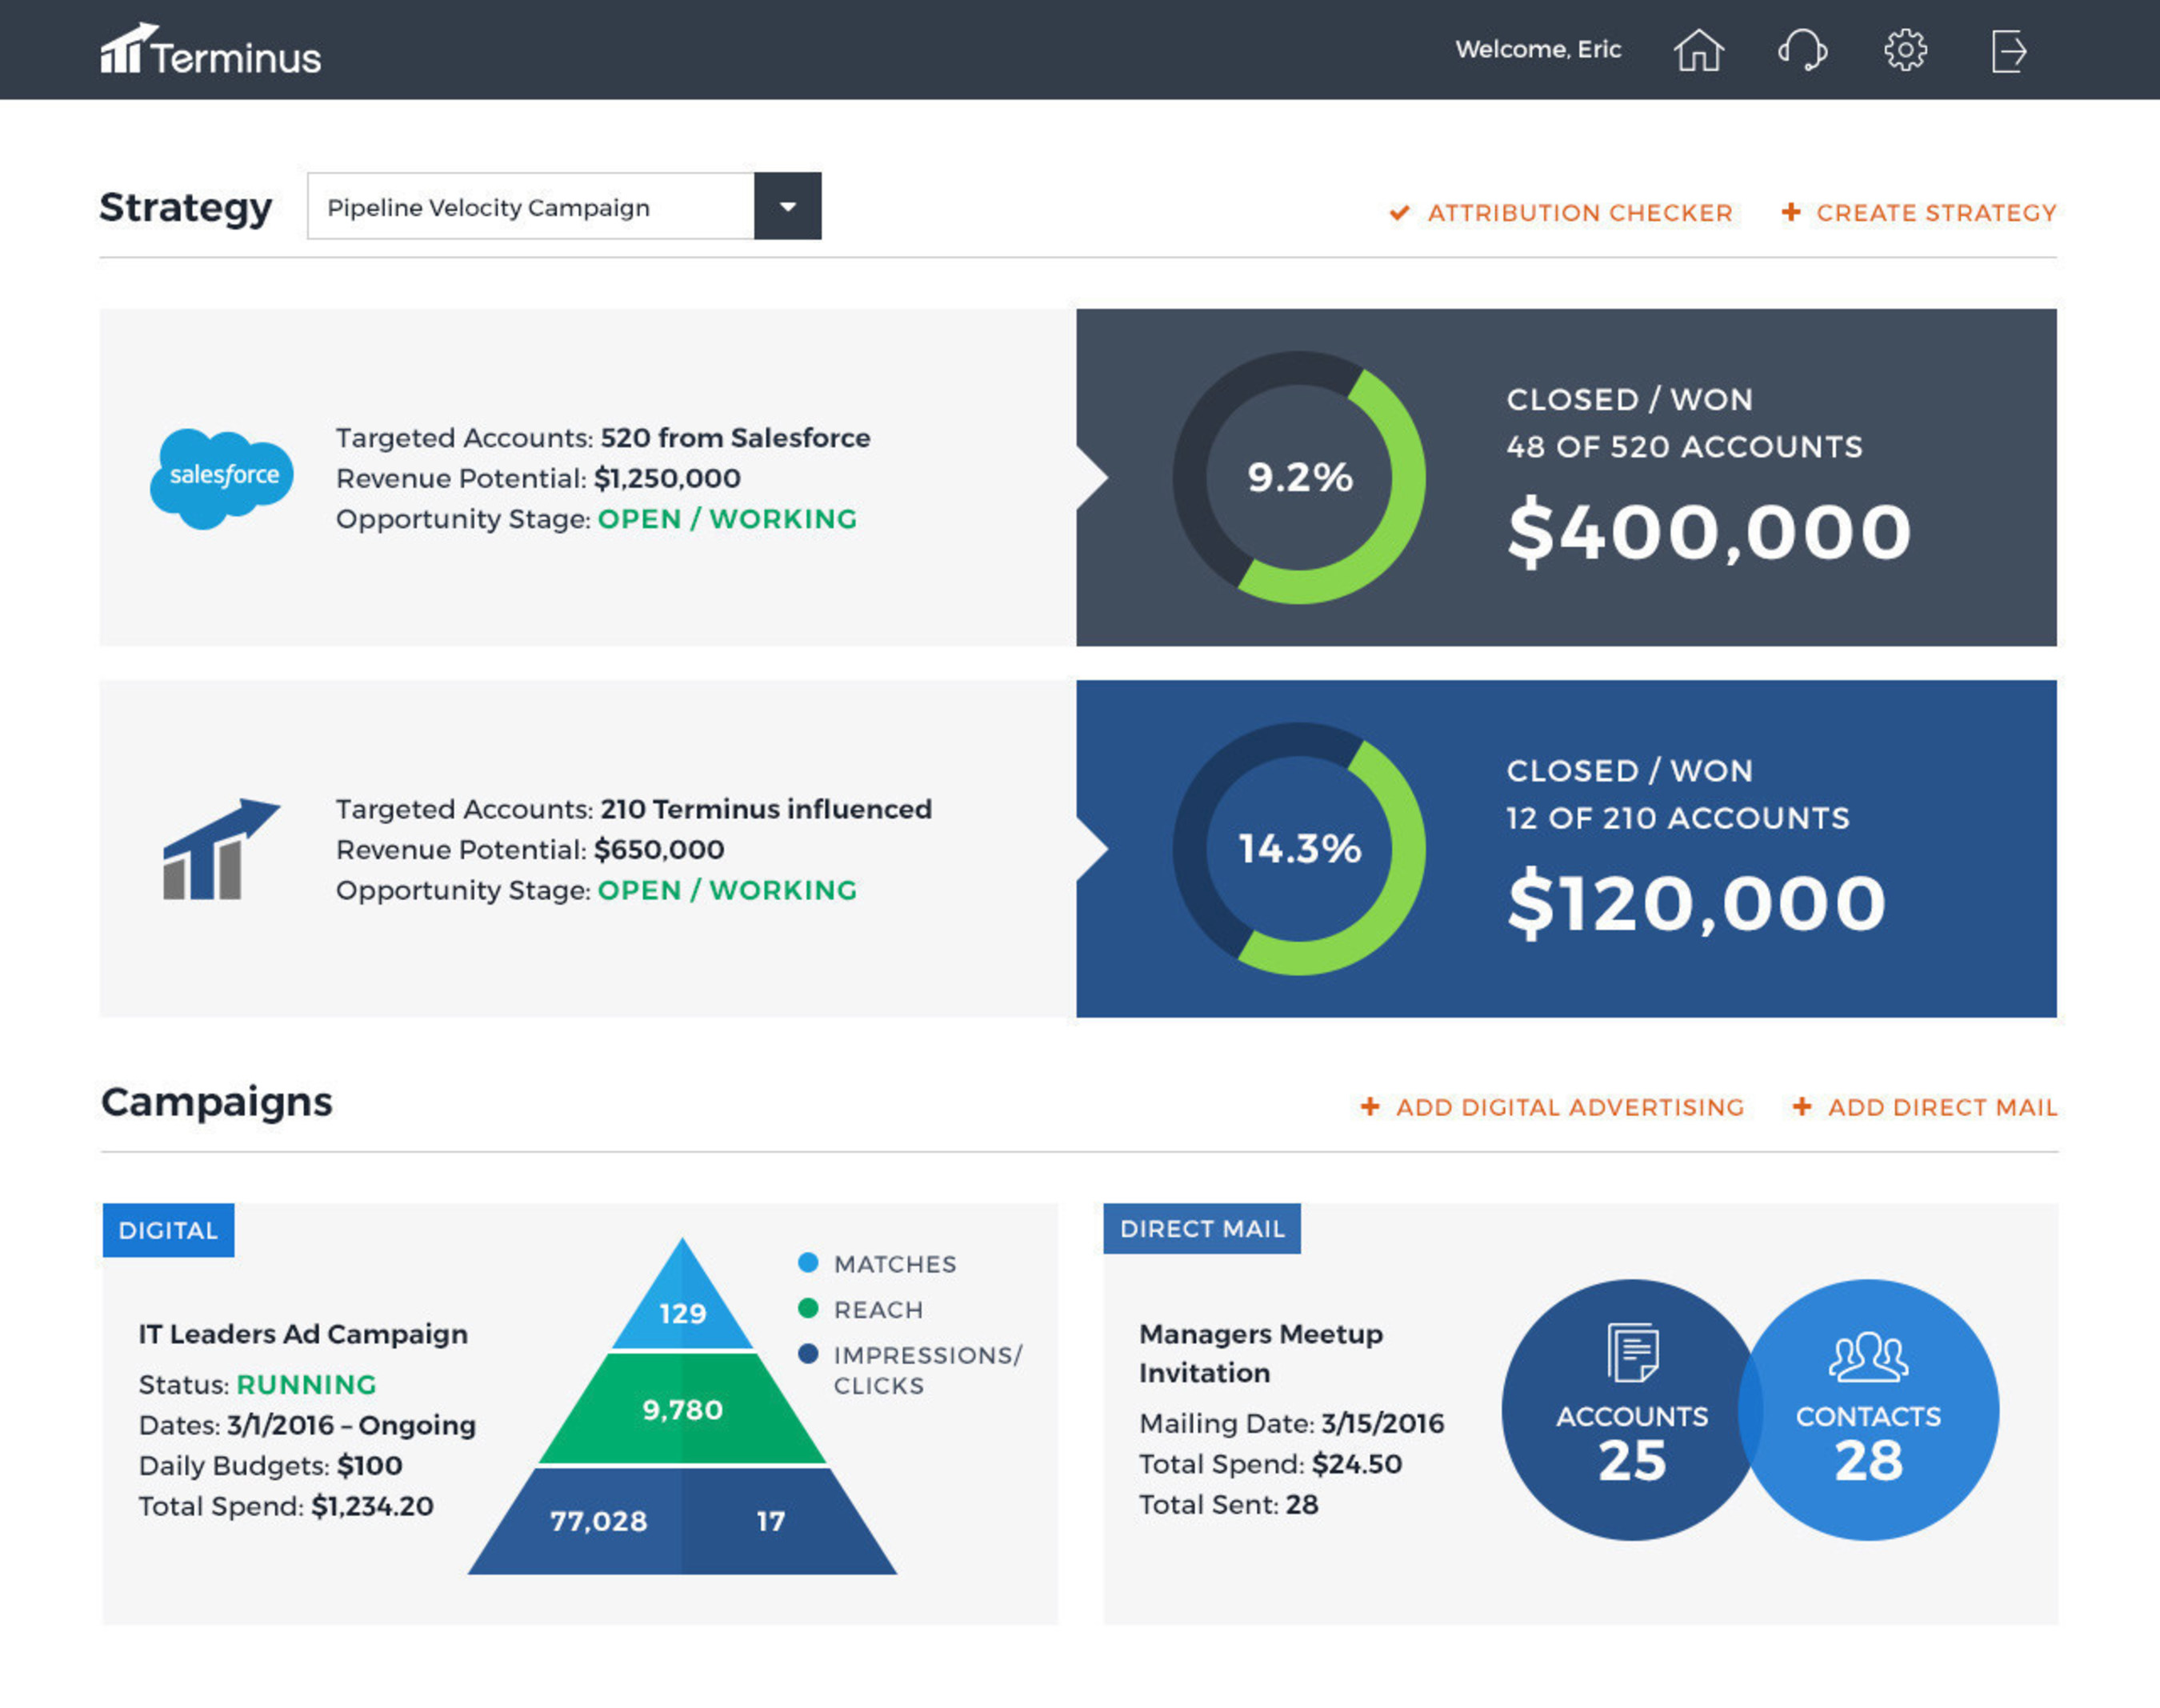 The Account Hub from Terminus is the newest product innovation from the leading provider of account-based marketing software for B2B marketers to do targeted advertising at best-fit accounts.